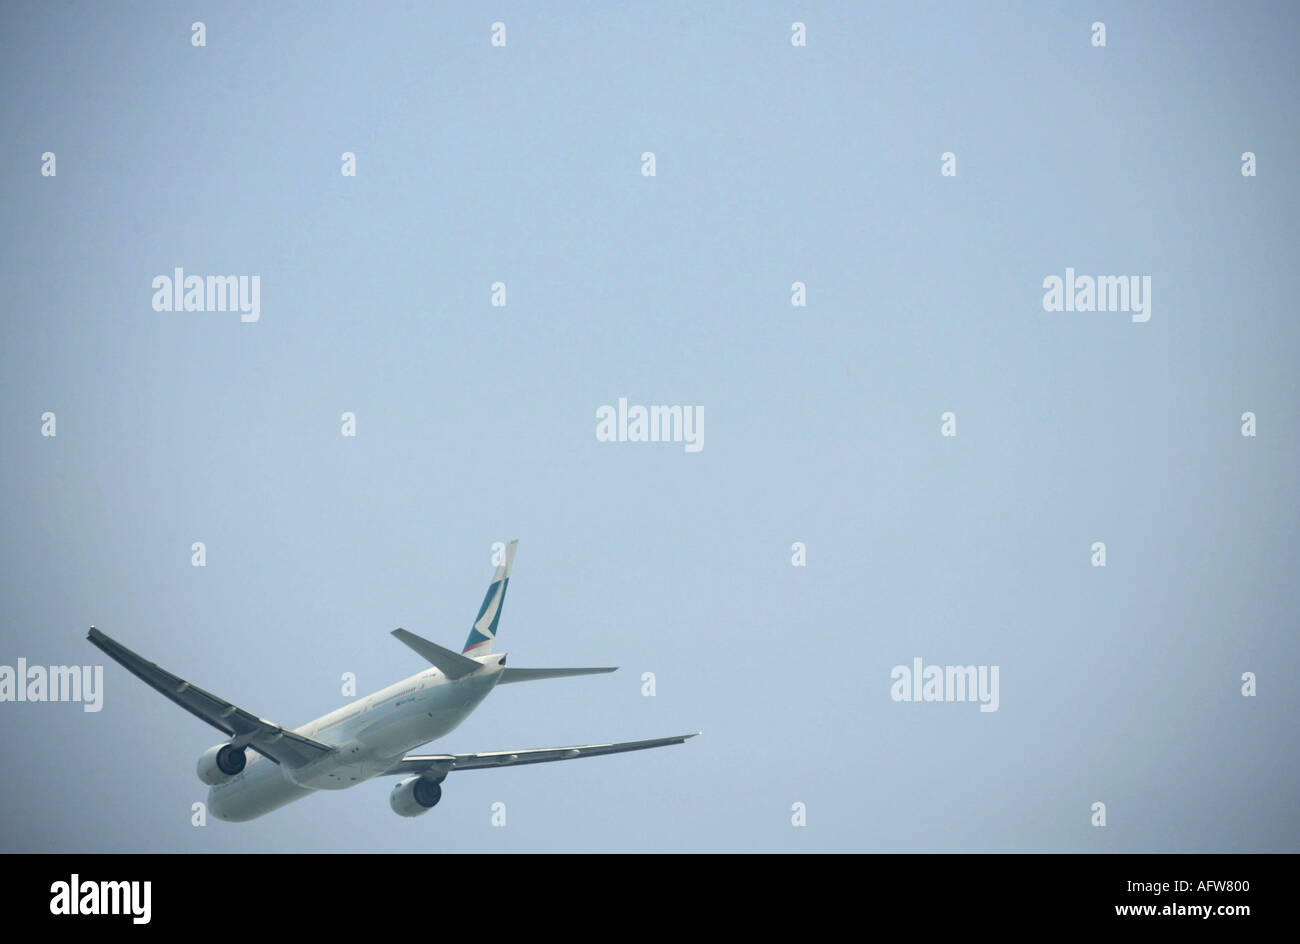 Cathay Pacific after taking of from Hong Kongs Chek Lap Kok airport - Stock Image